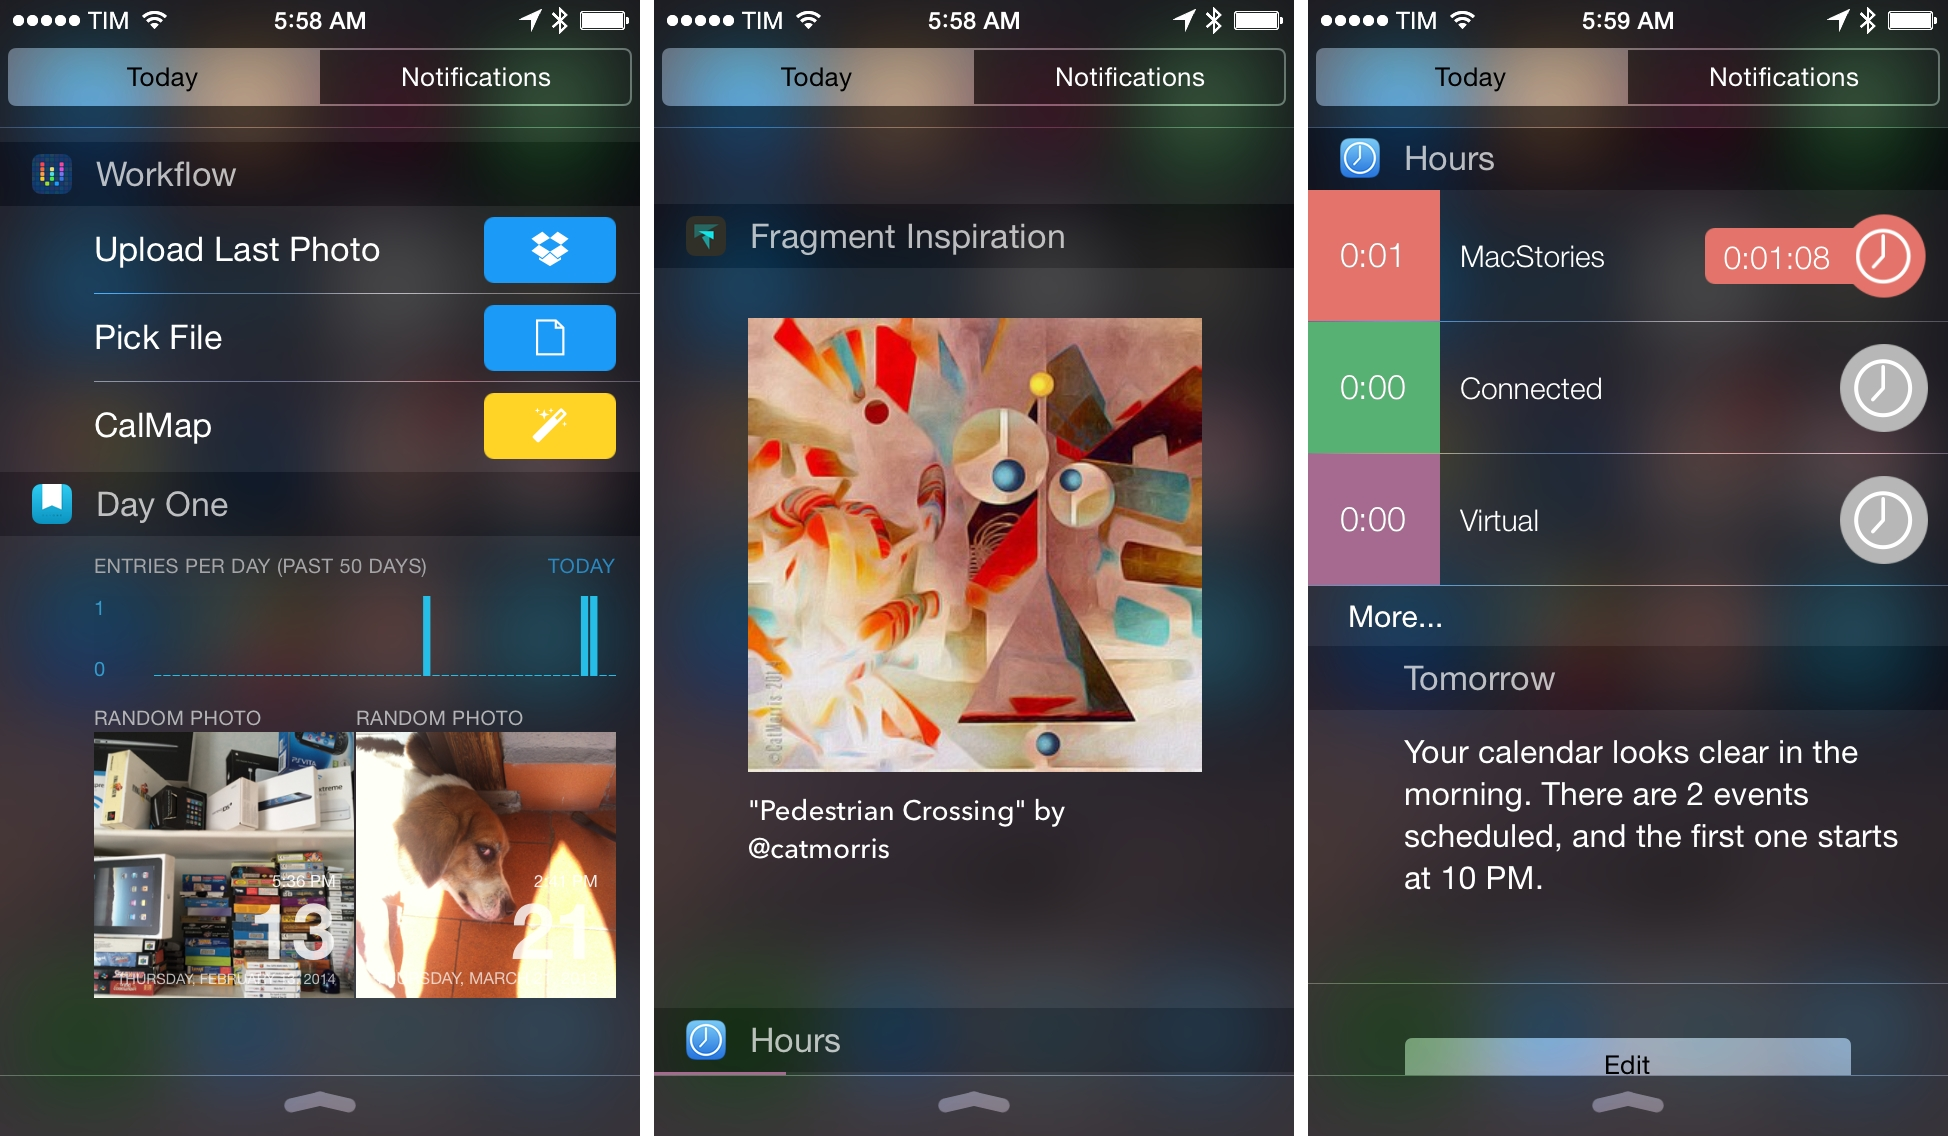 Left to right: Workflow, Day One, Fragment, and Hours widgets.